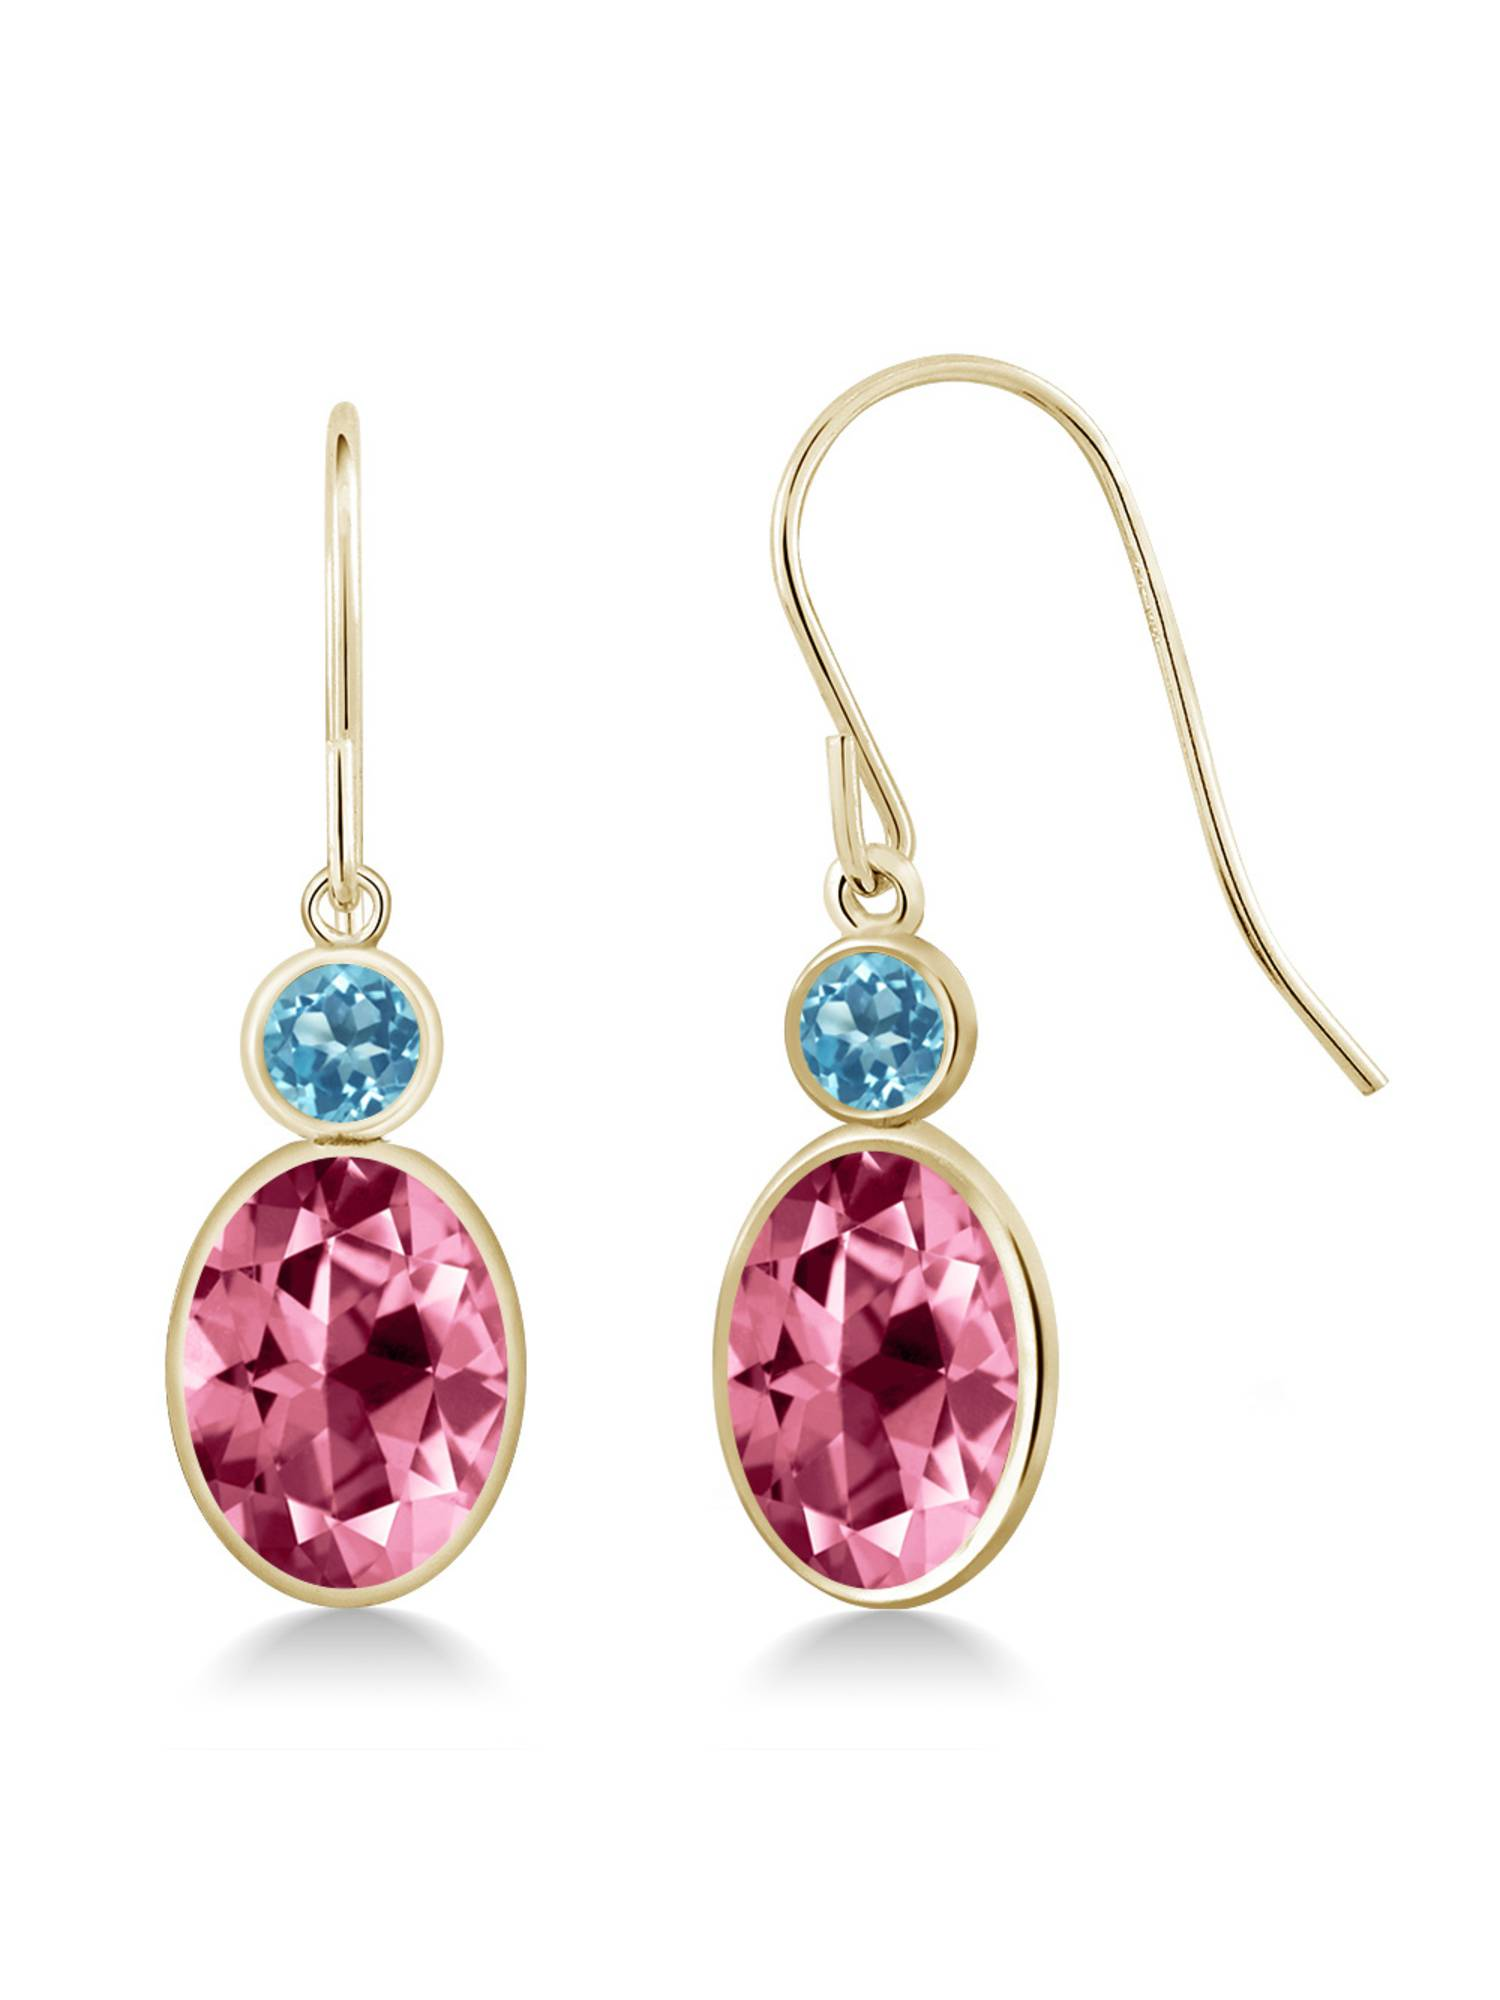 14K Yellow Gold Earrings Topaz Set with Oval Pink Topaz from Swarovski by Yellow-Gold Pins